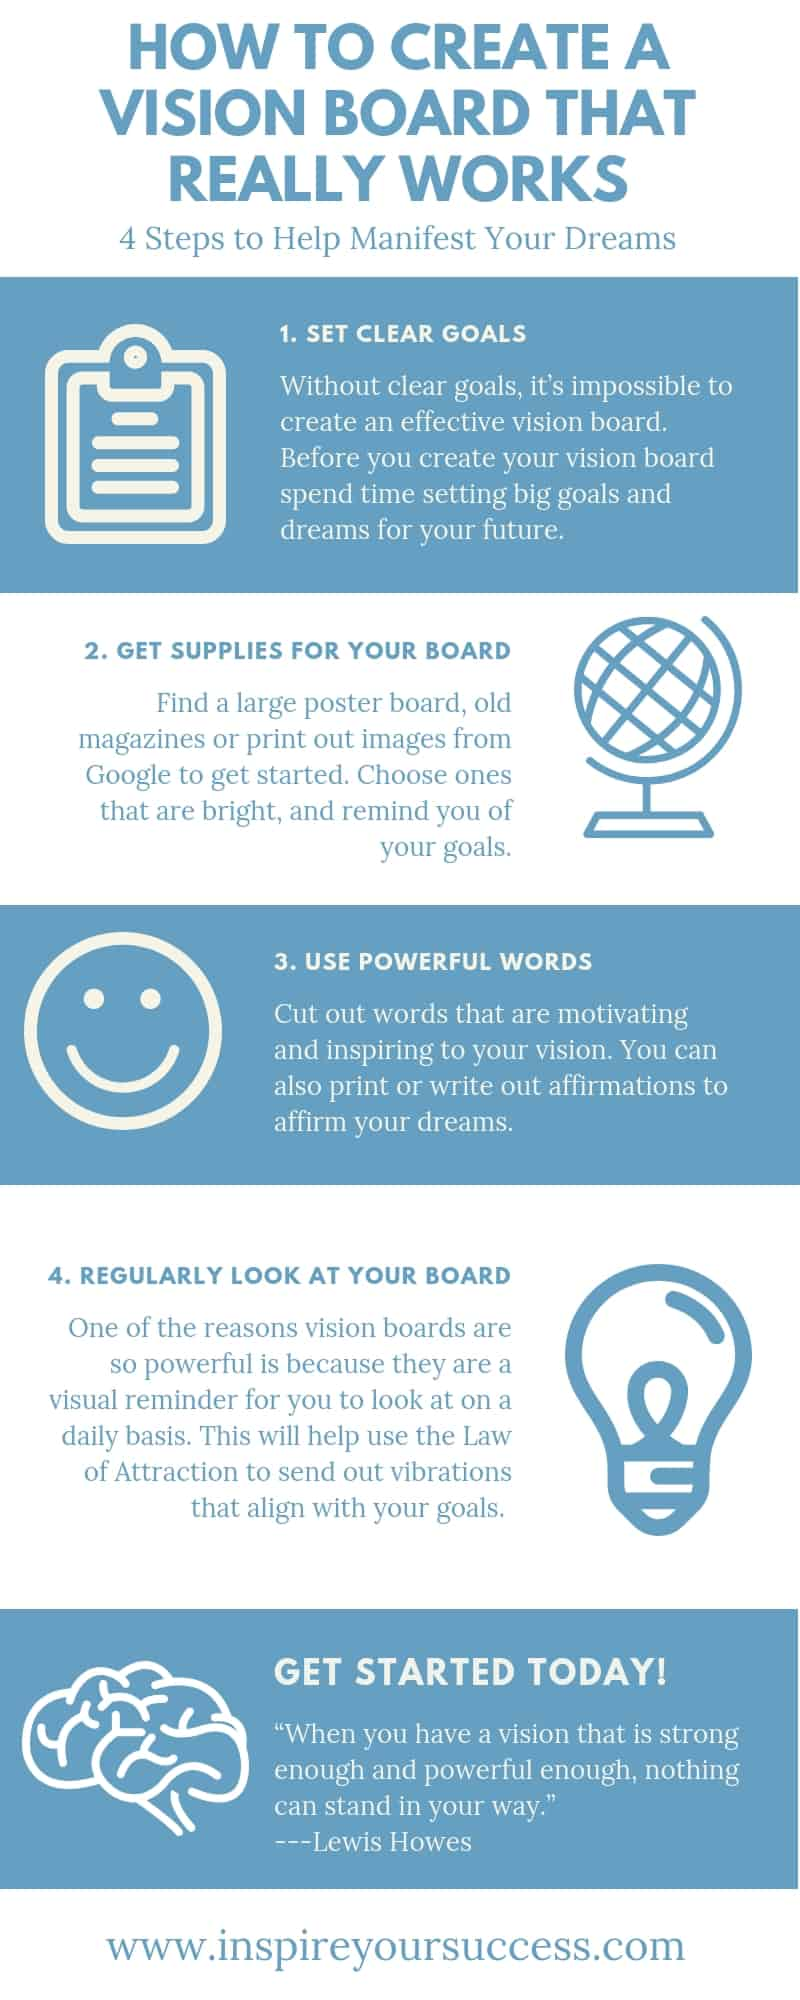 How to create a vision board that really works! #loa #lawofattraction #manifest #dreams #bigdreams